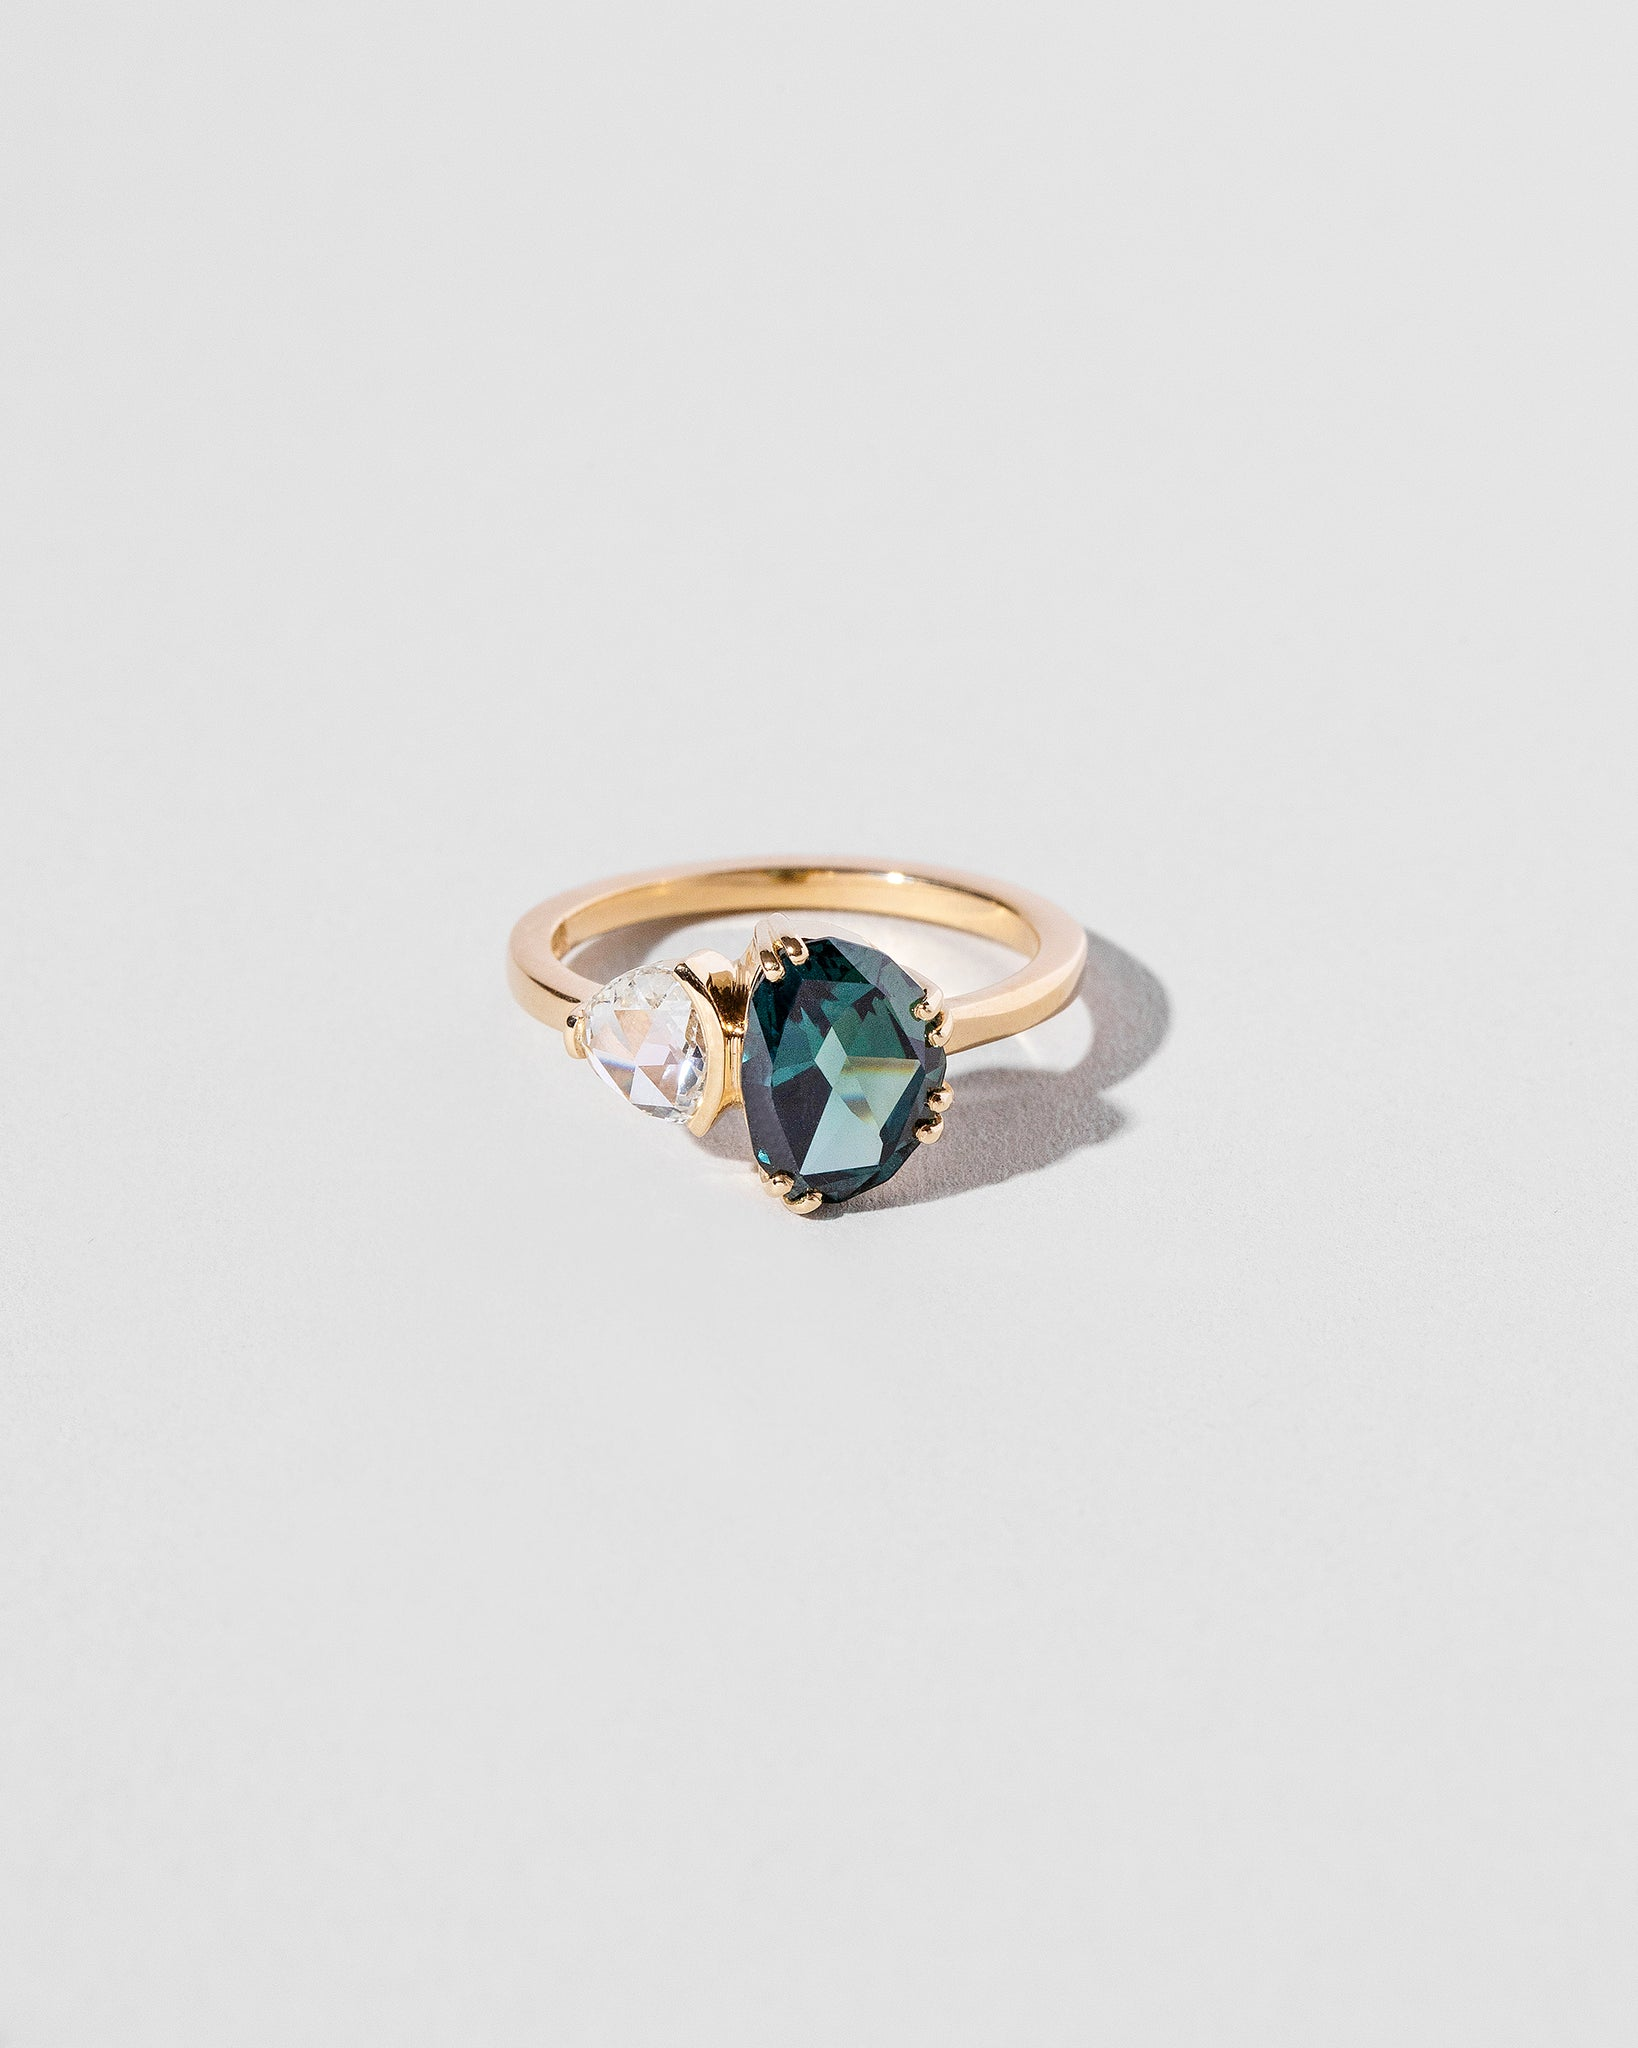 Demeter Ring front view